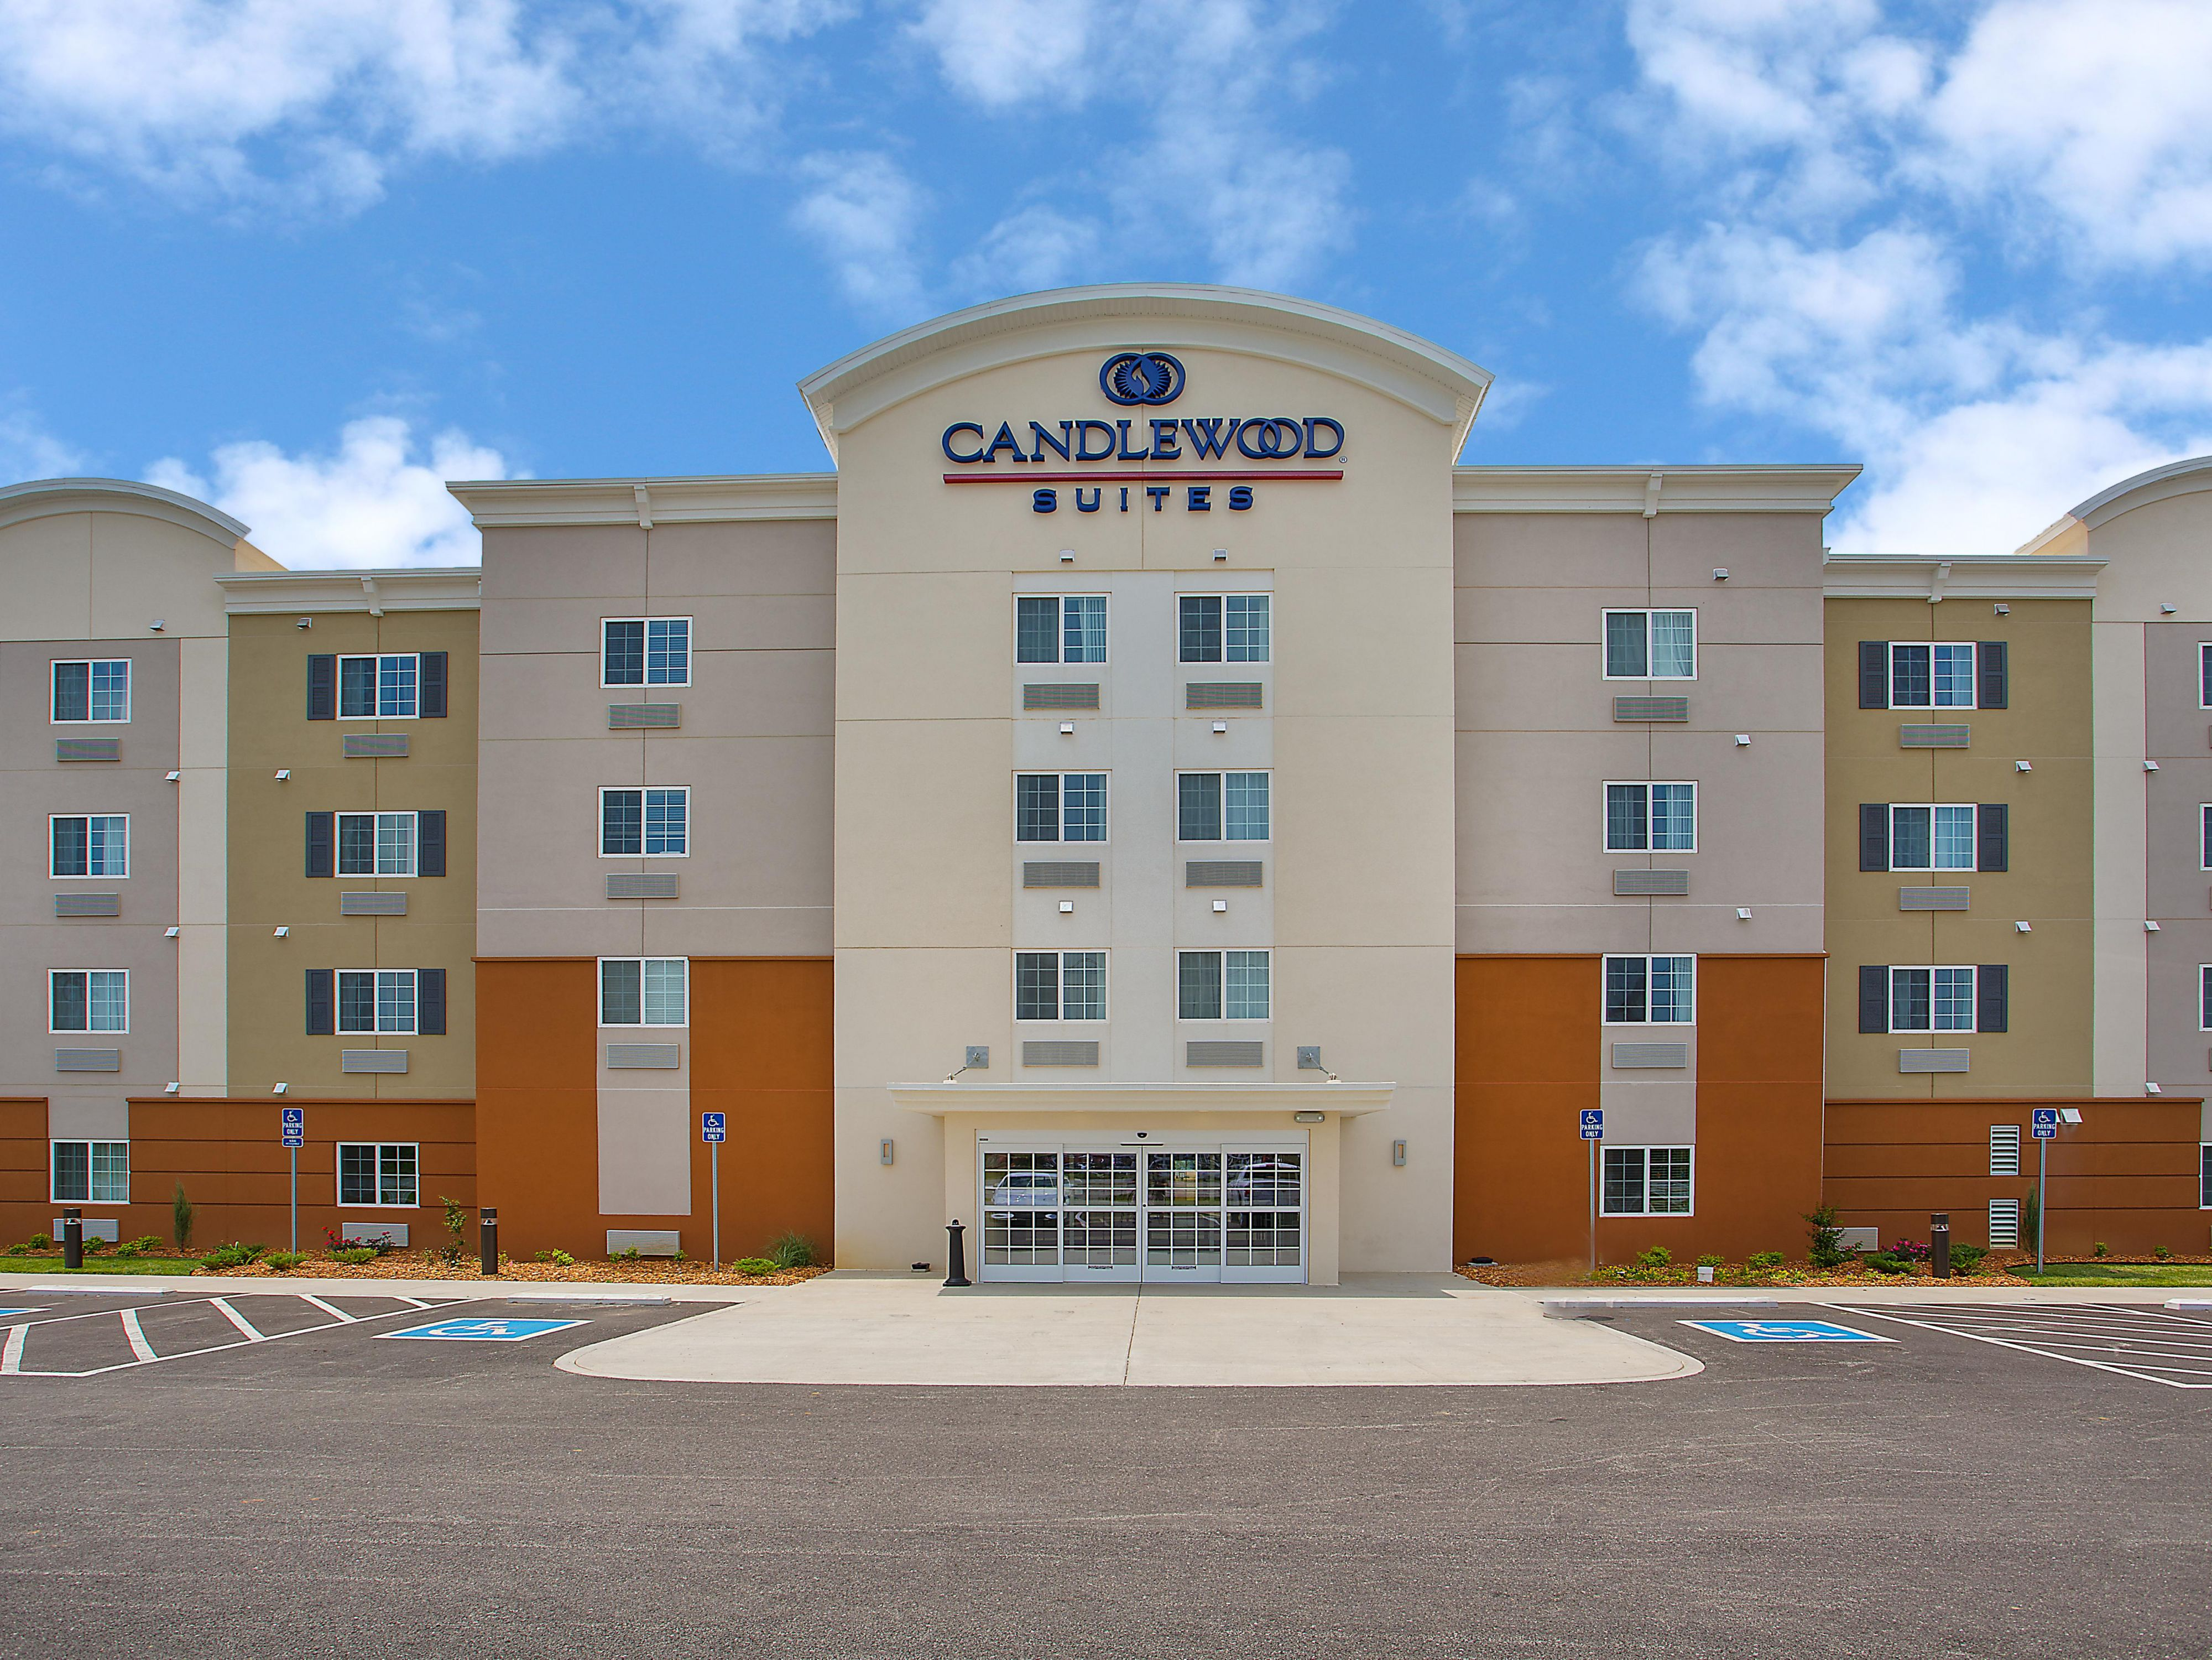 Cranberry Township Hotels Candlewood Suites Pittsburgh Extended Stay Hotel In Pennsylvania